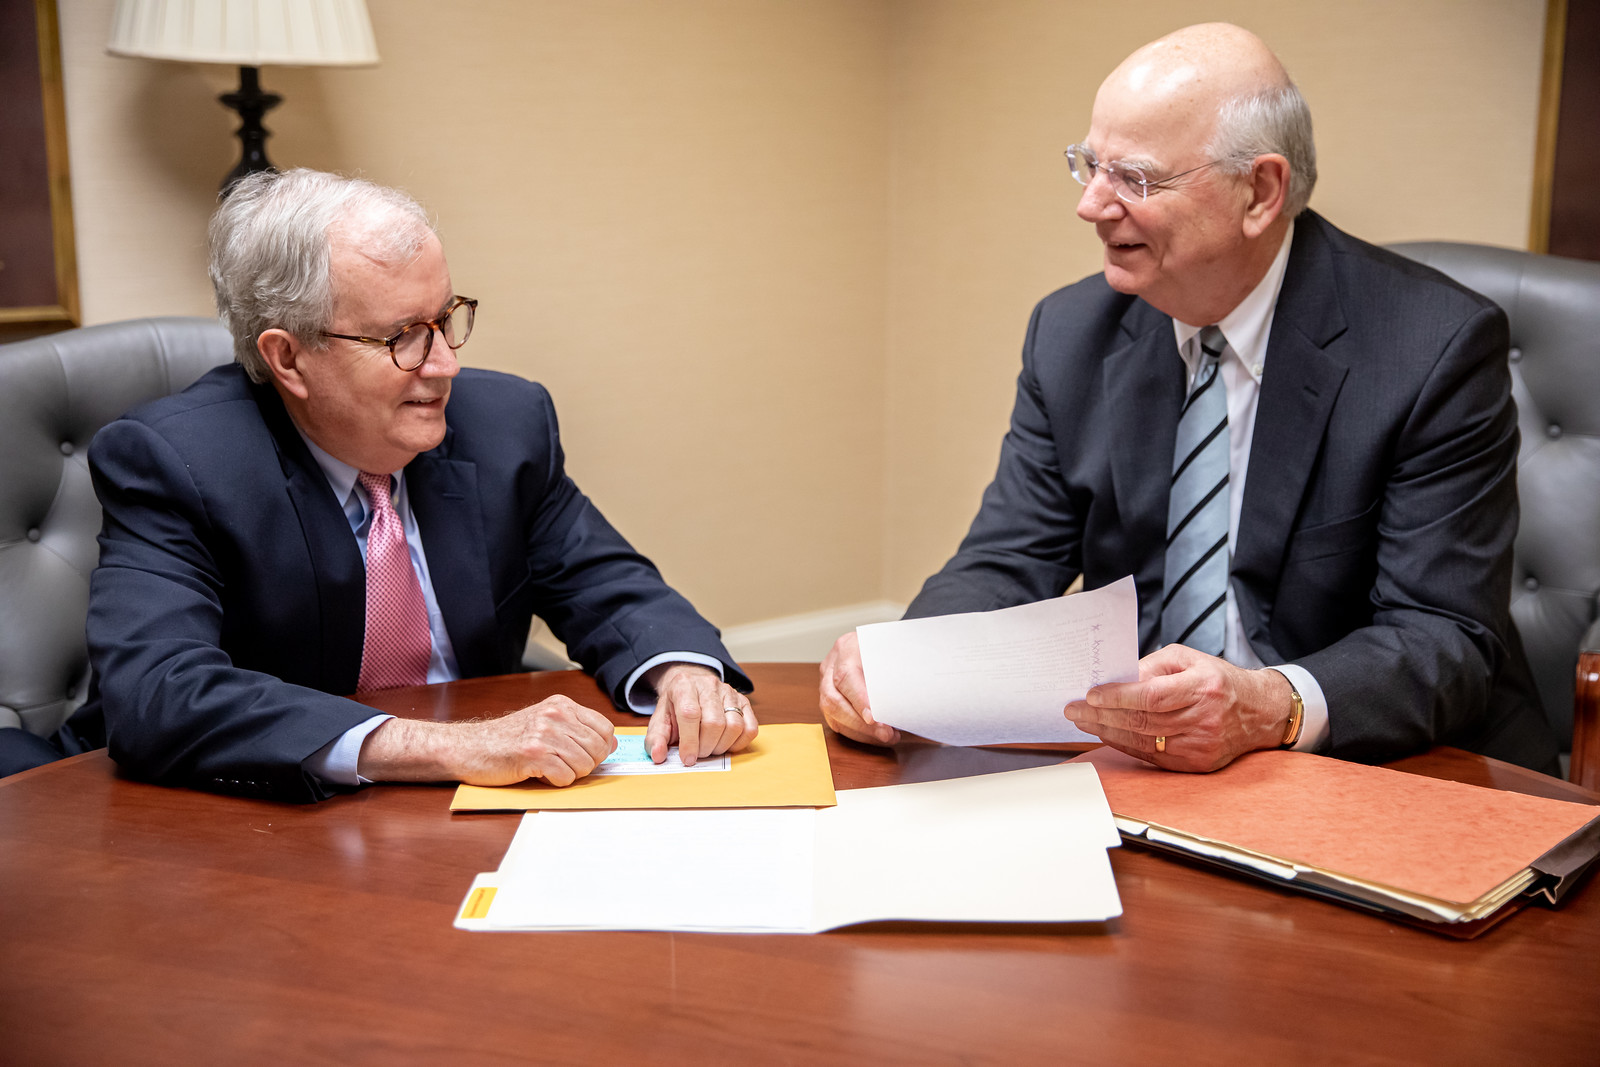 Mike and Rees - Corporate Lawyers at Gilbert Harrell Law Firm